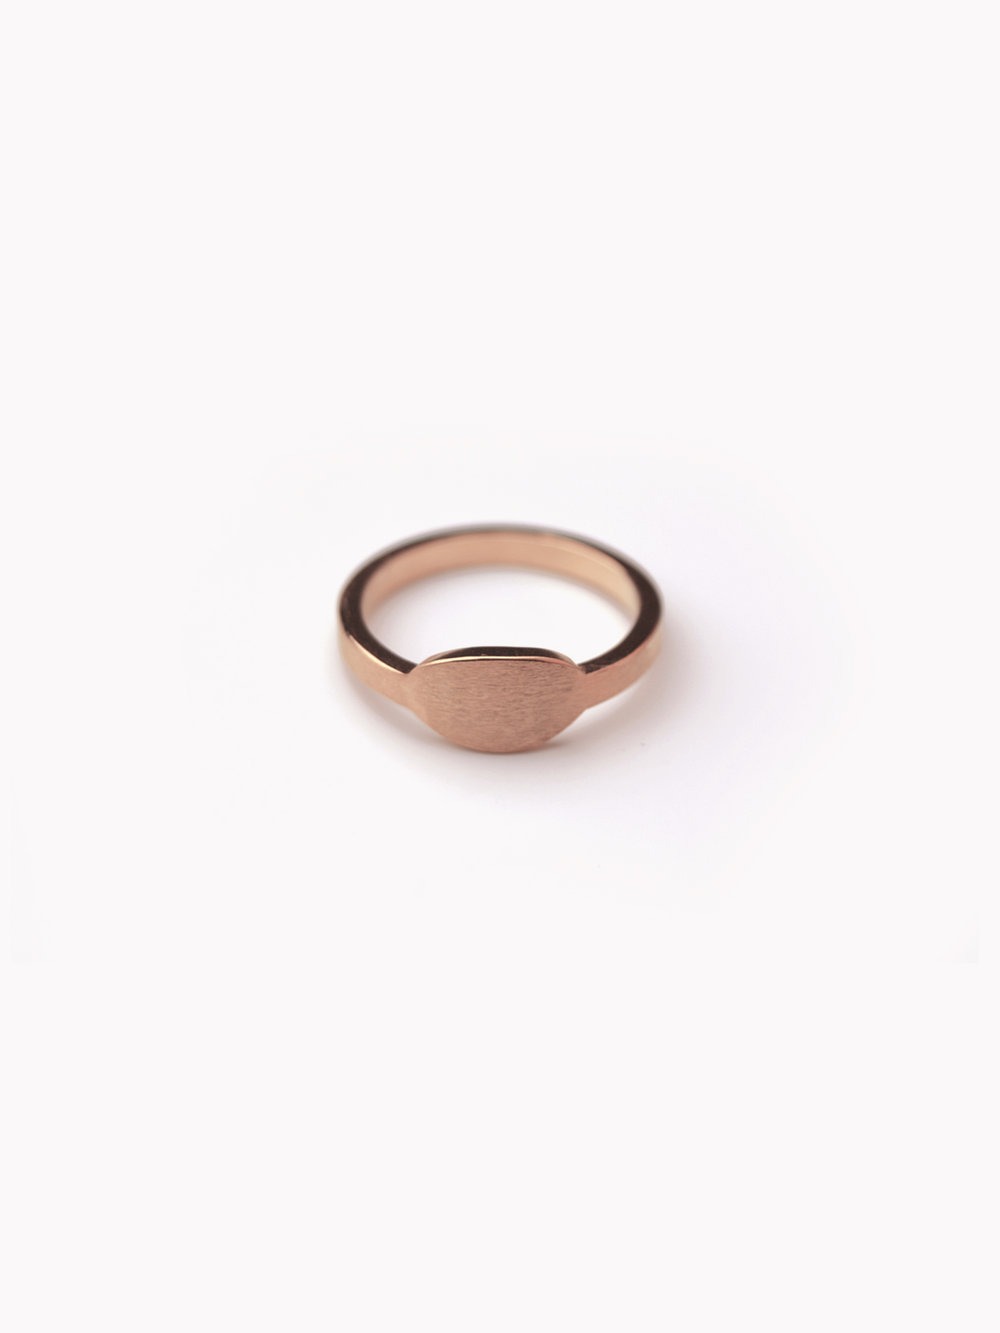 Siegelring, queroval klein in rosegoldplatiertem 925 Silber/ Signet ring, horizontal oval small in silver, rosegoldplated